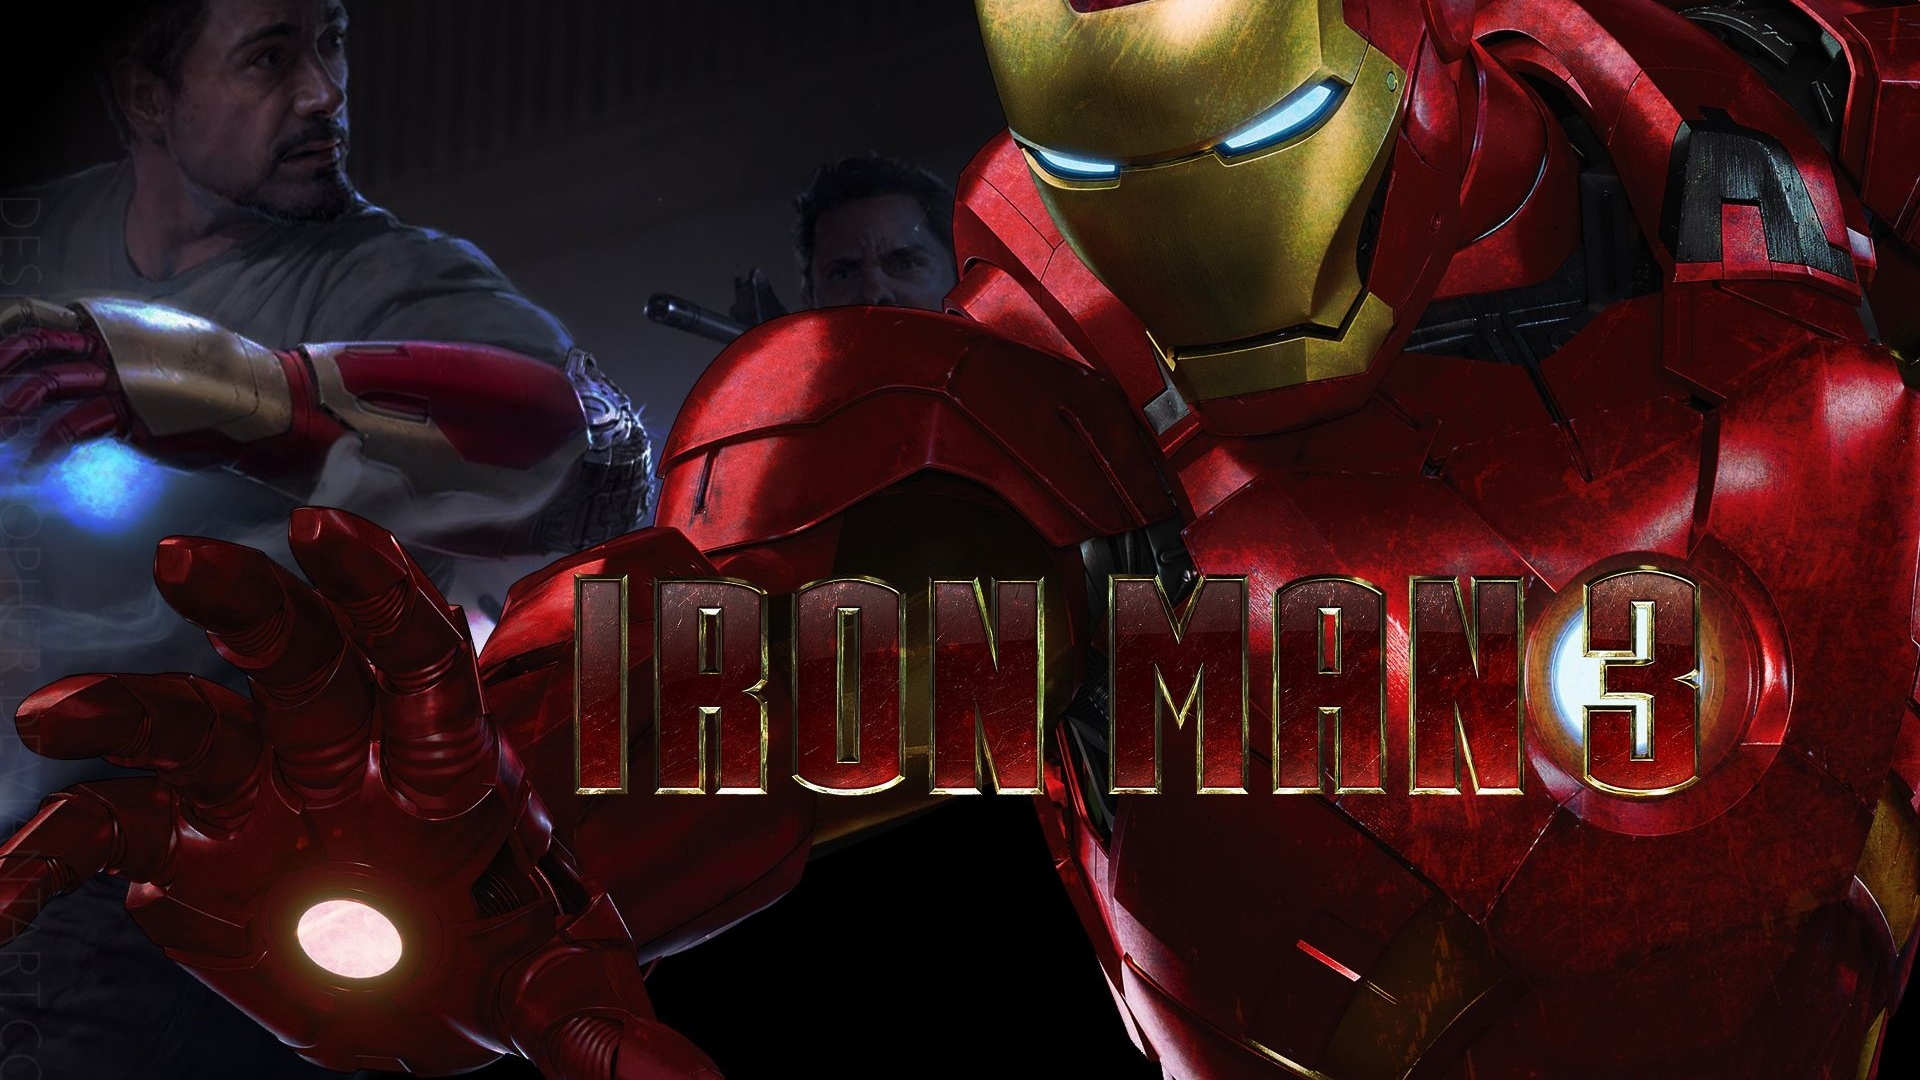 2013 movie iron man 3 wallpaper